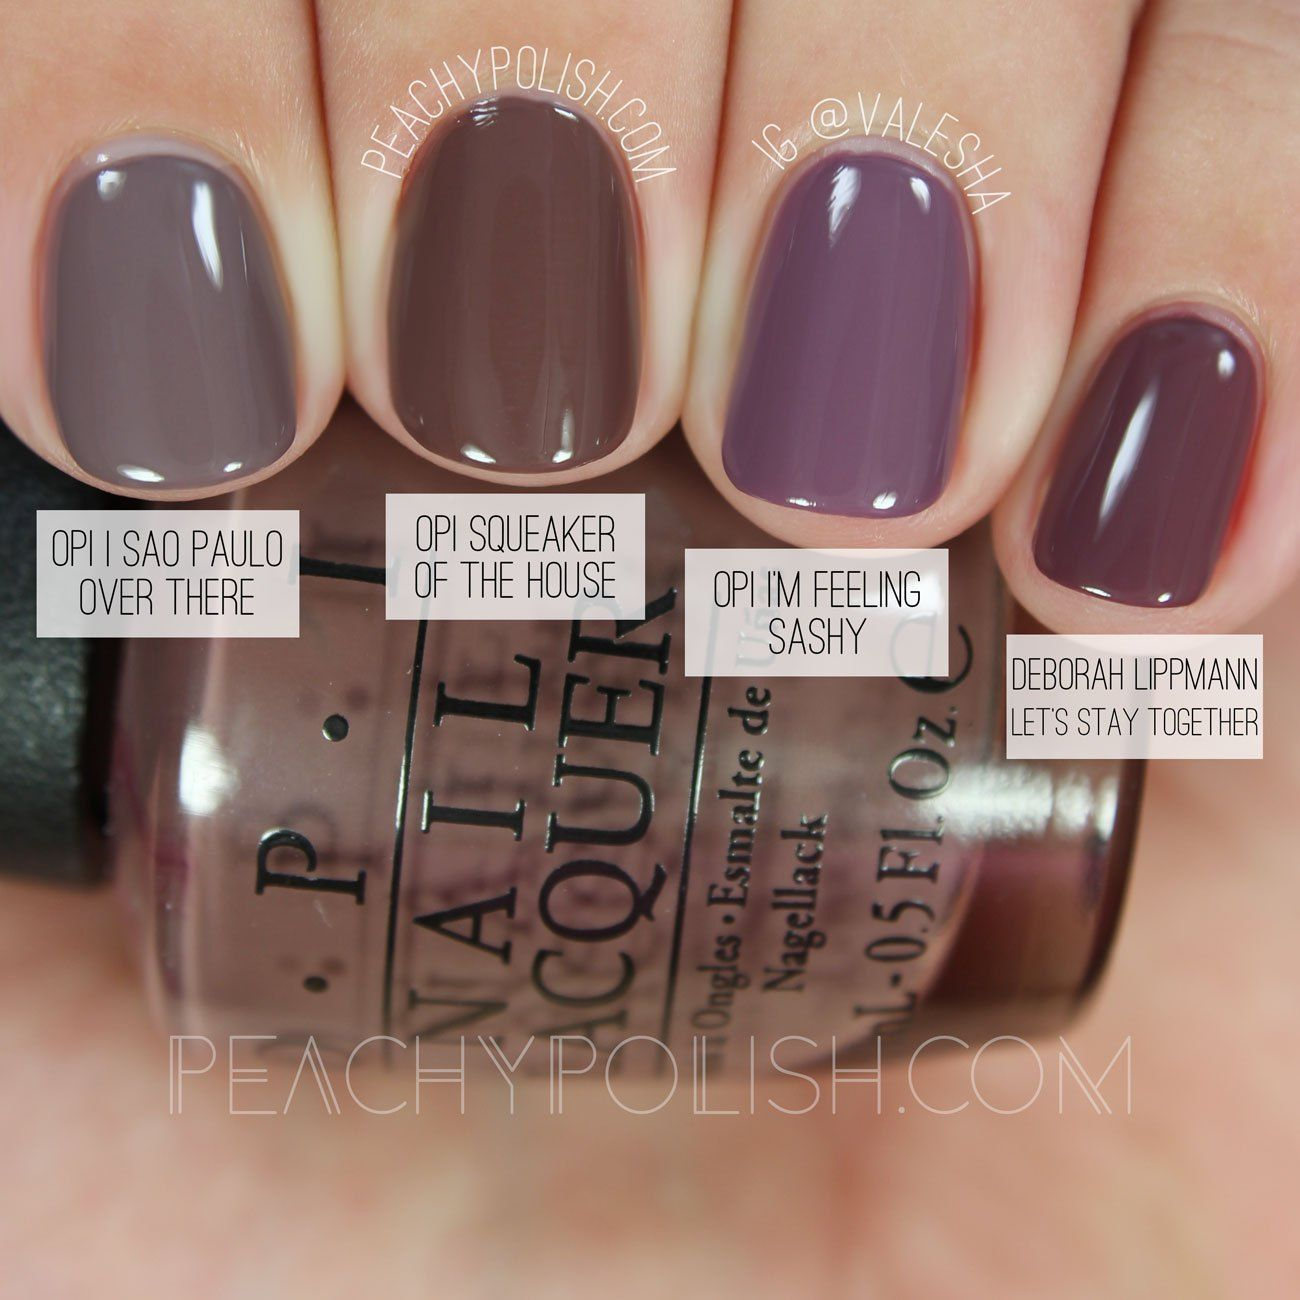 Opi Comparisons Washington D C Collection Nail Polish How To Do Nails Manicure